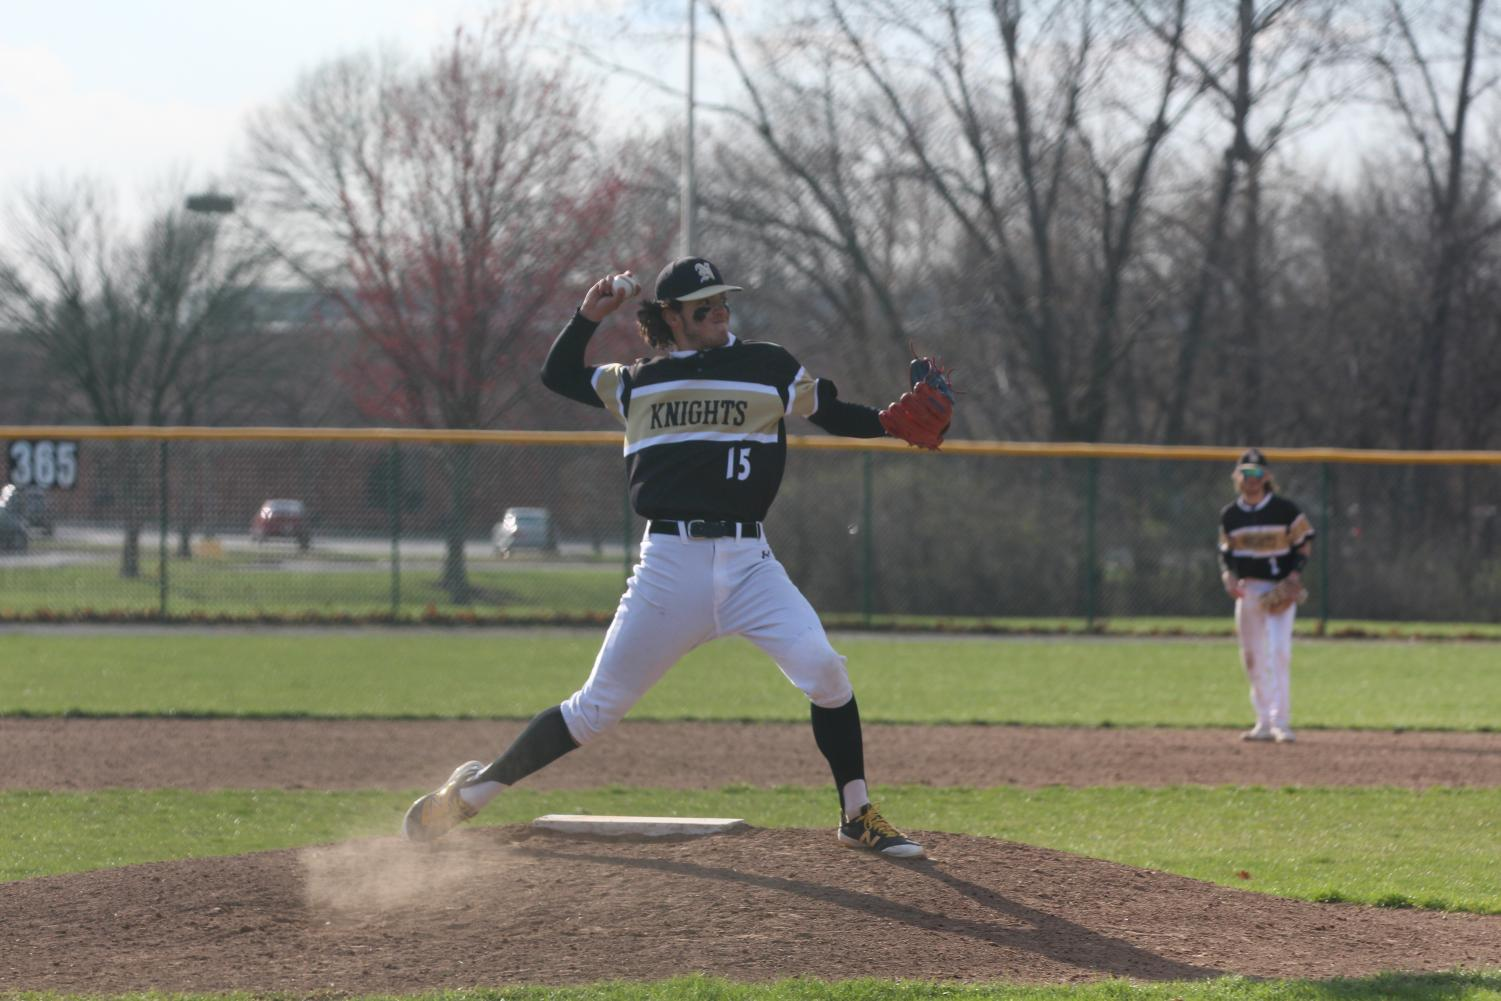 Sophomore Jackson Mitchell attempts to pick off a runner at first base during a game.